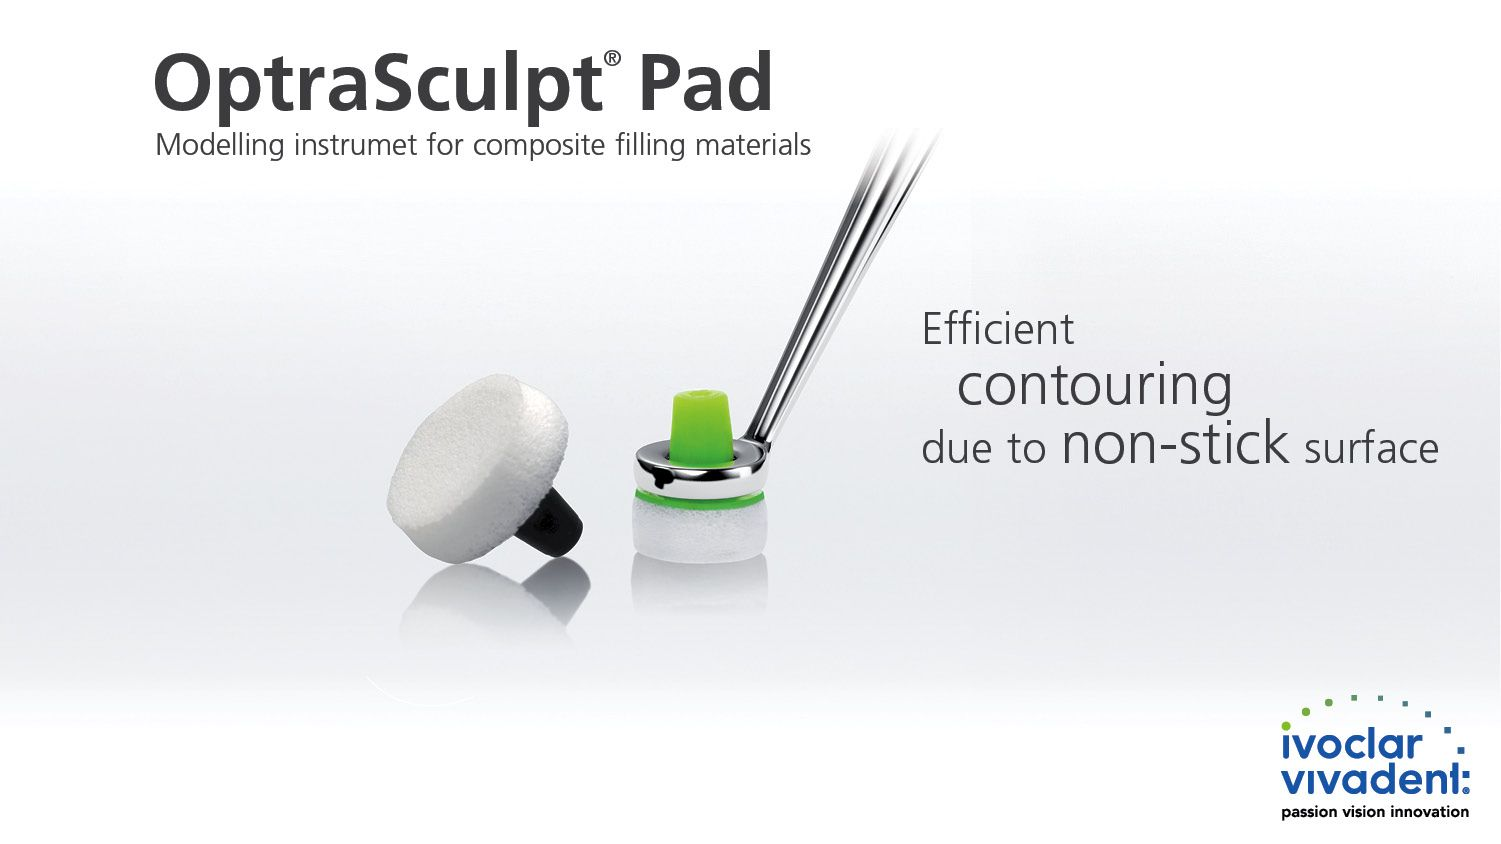 Optrasculpt Pad Is A Contouring Instrument With Special Foam Pad Attachments Which Is Designed For The Efficient Non Stick Formin Composite Fillings Pad Foam